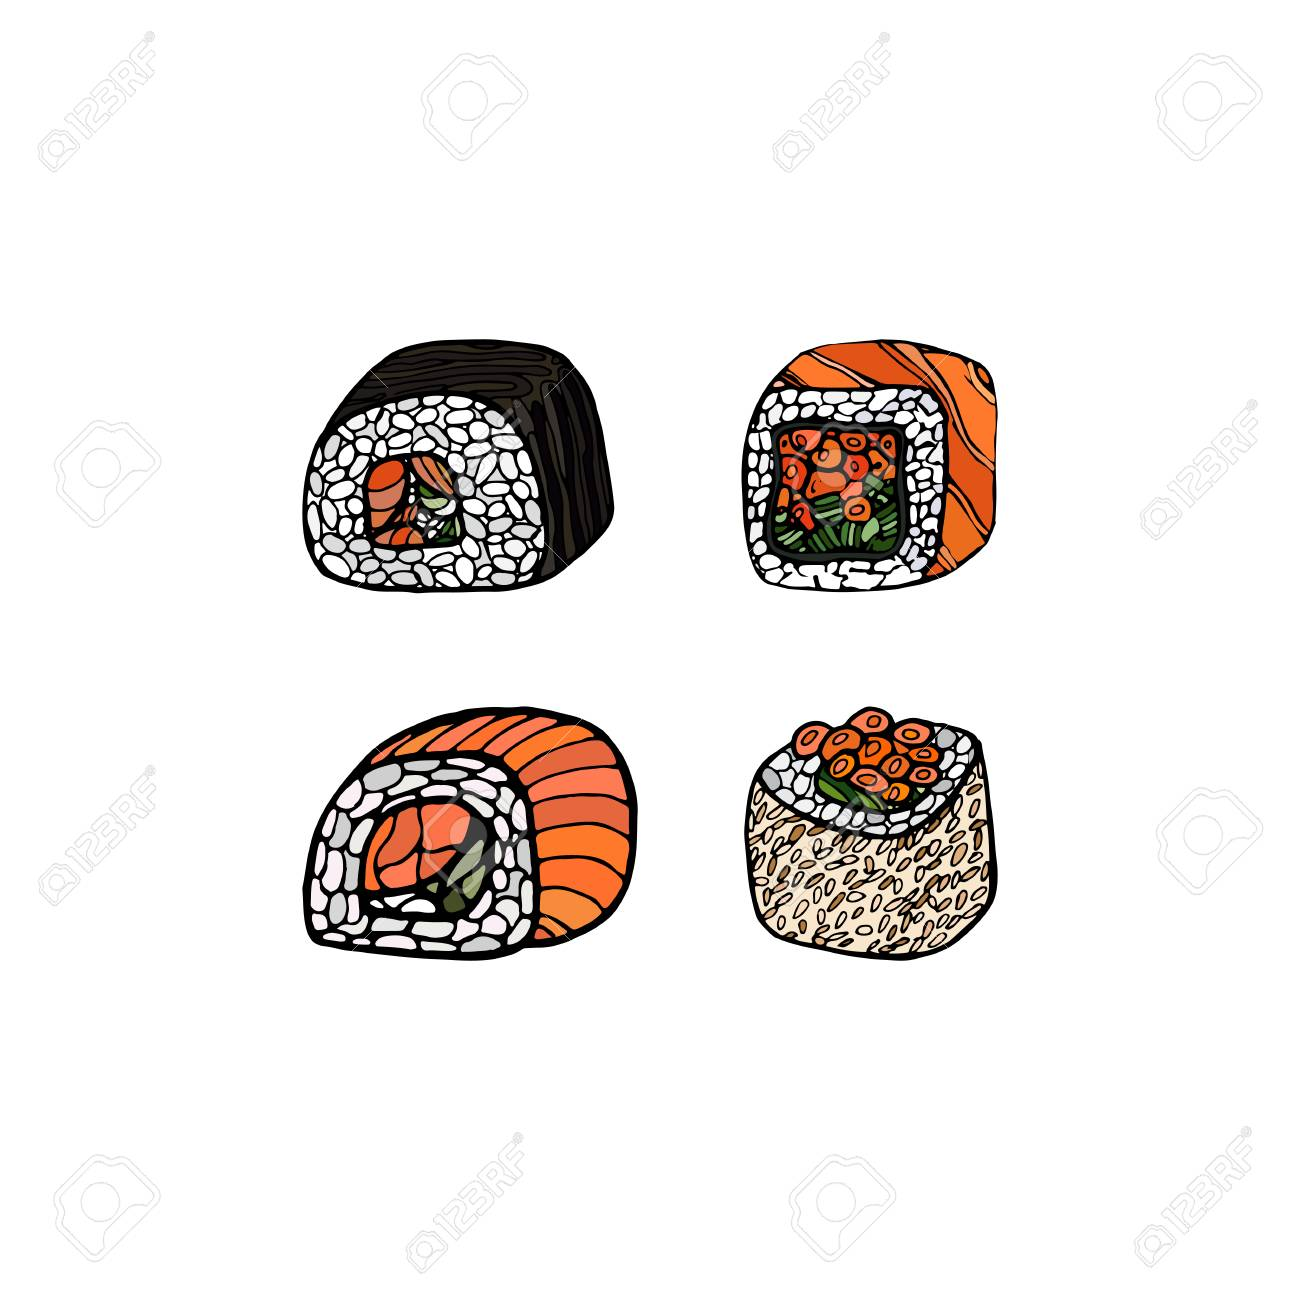 Sushi Roll Japanese Traditional Food Icon Isolated Hand Drawn